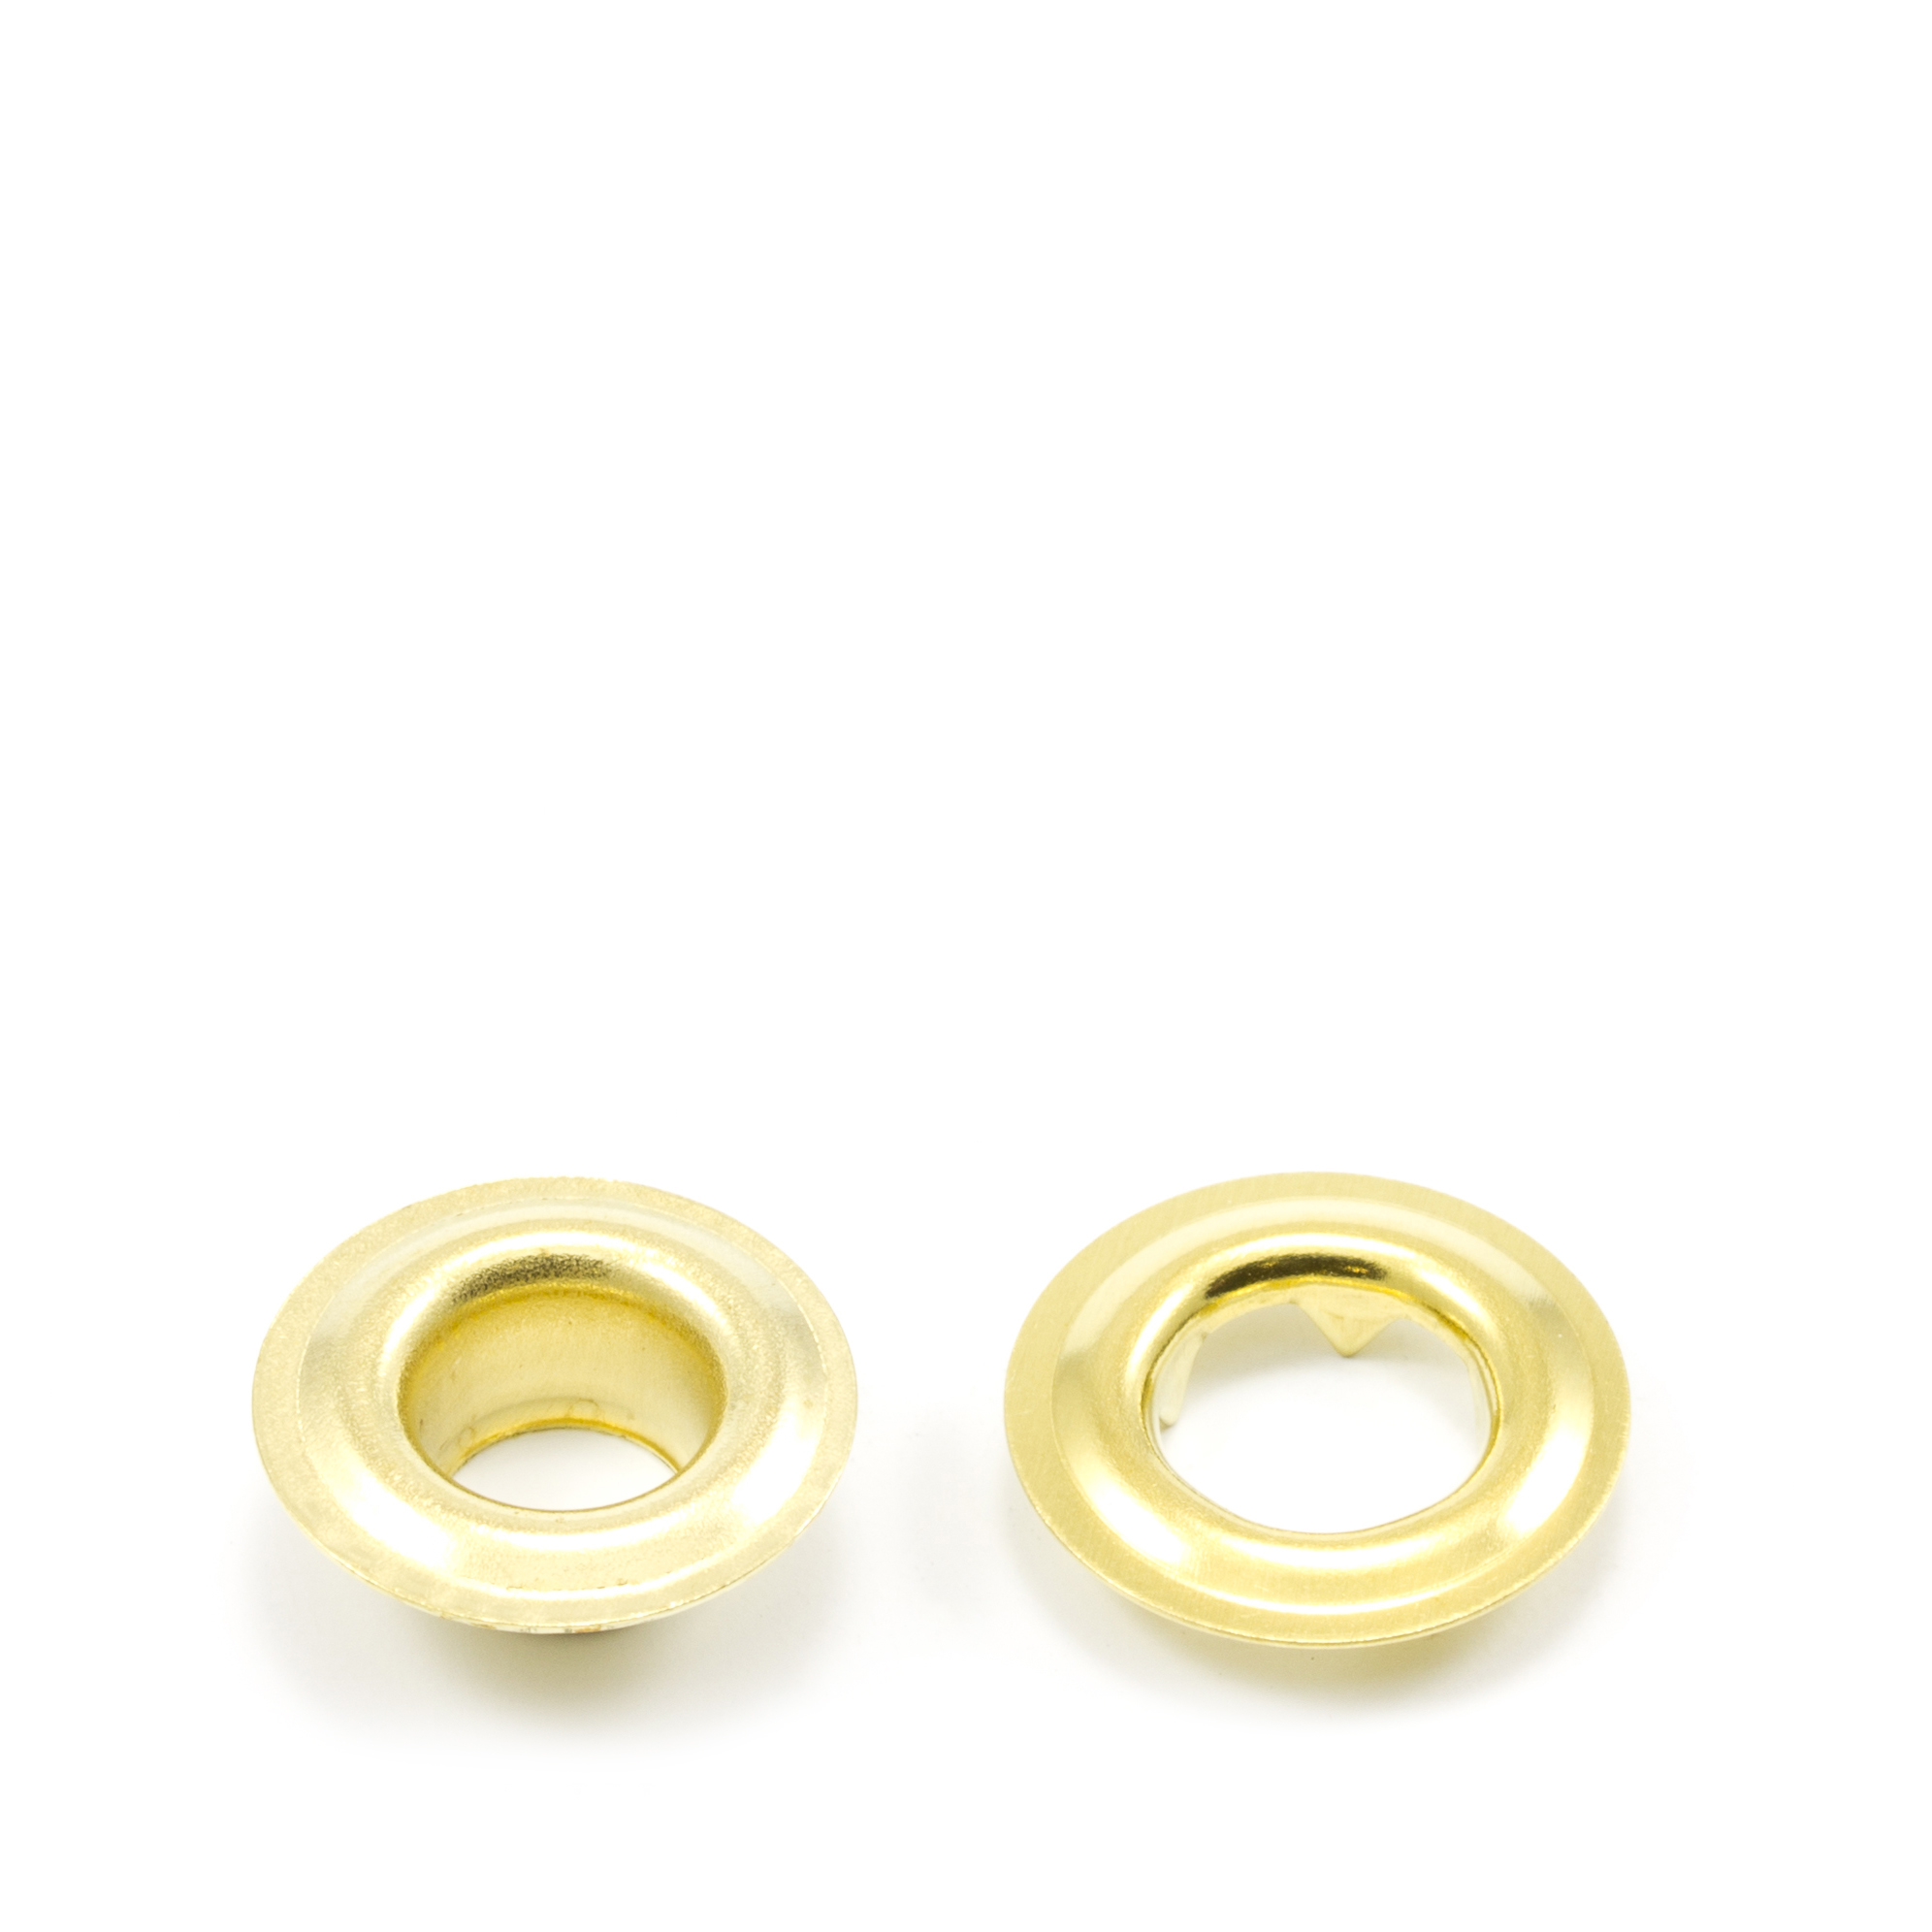 Thumbnail Grommet with Tooth Washer #0 Brass 1/4 1